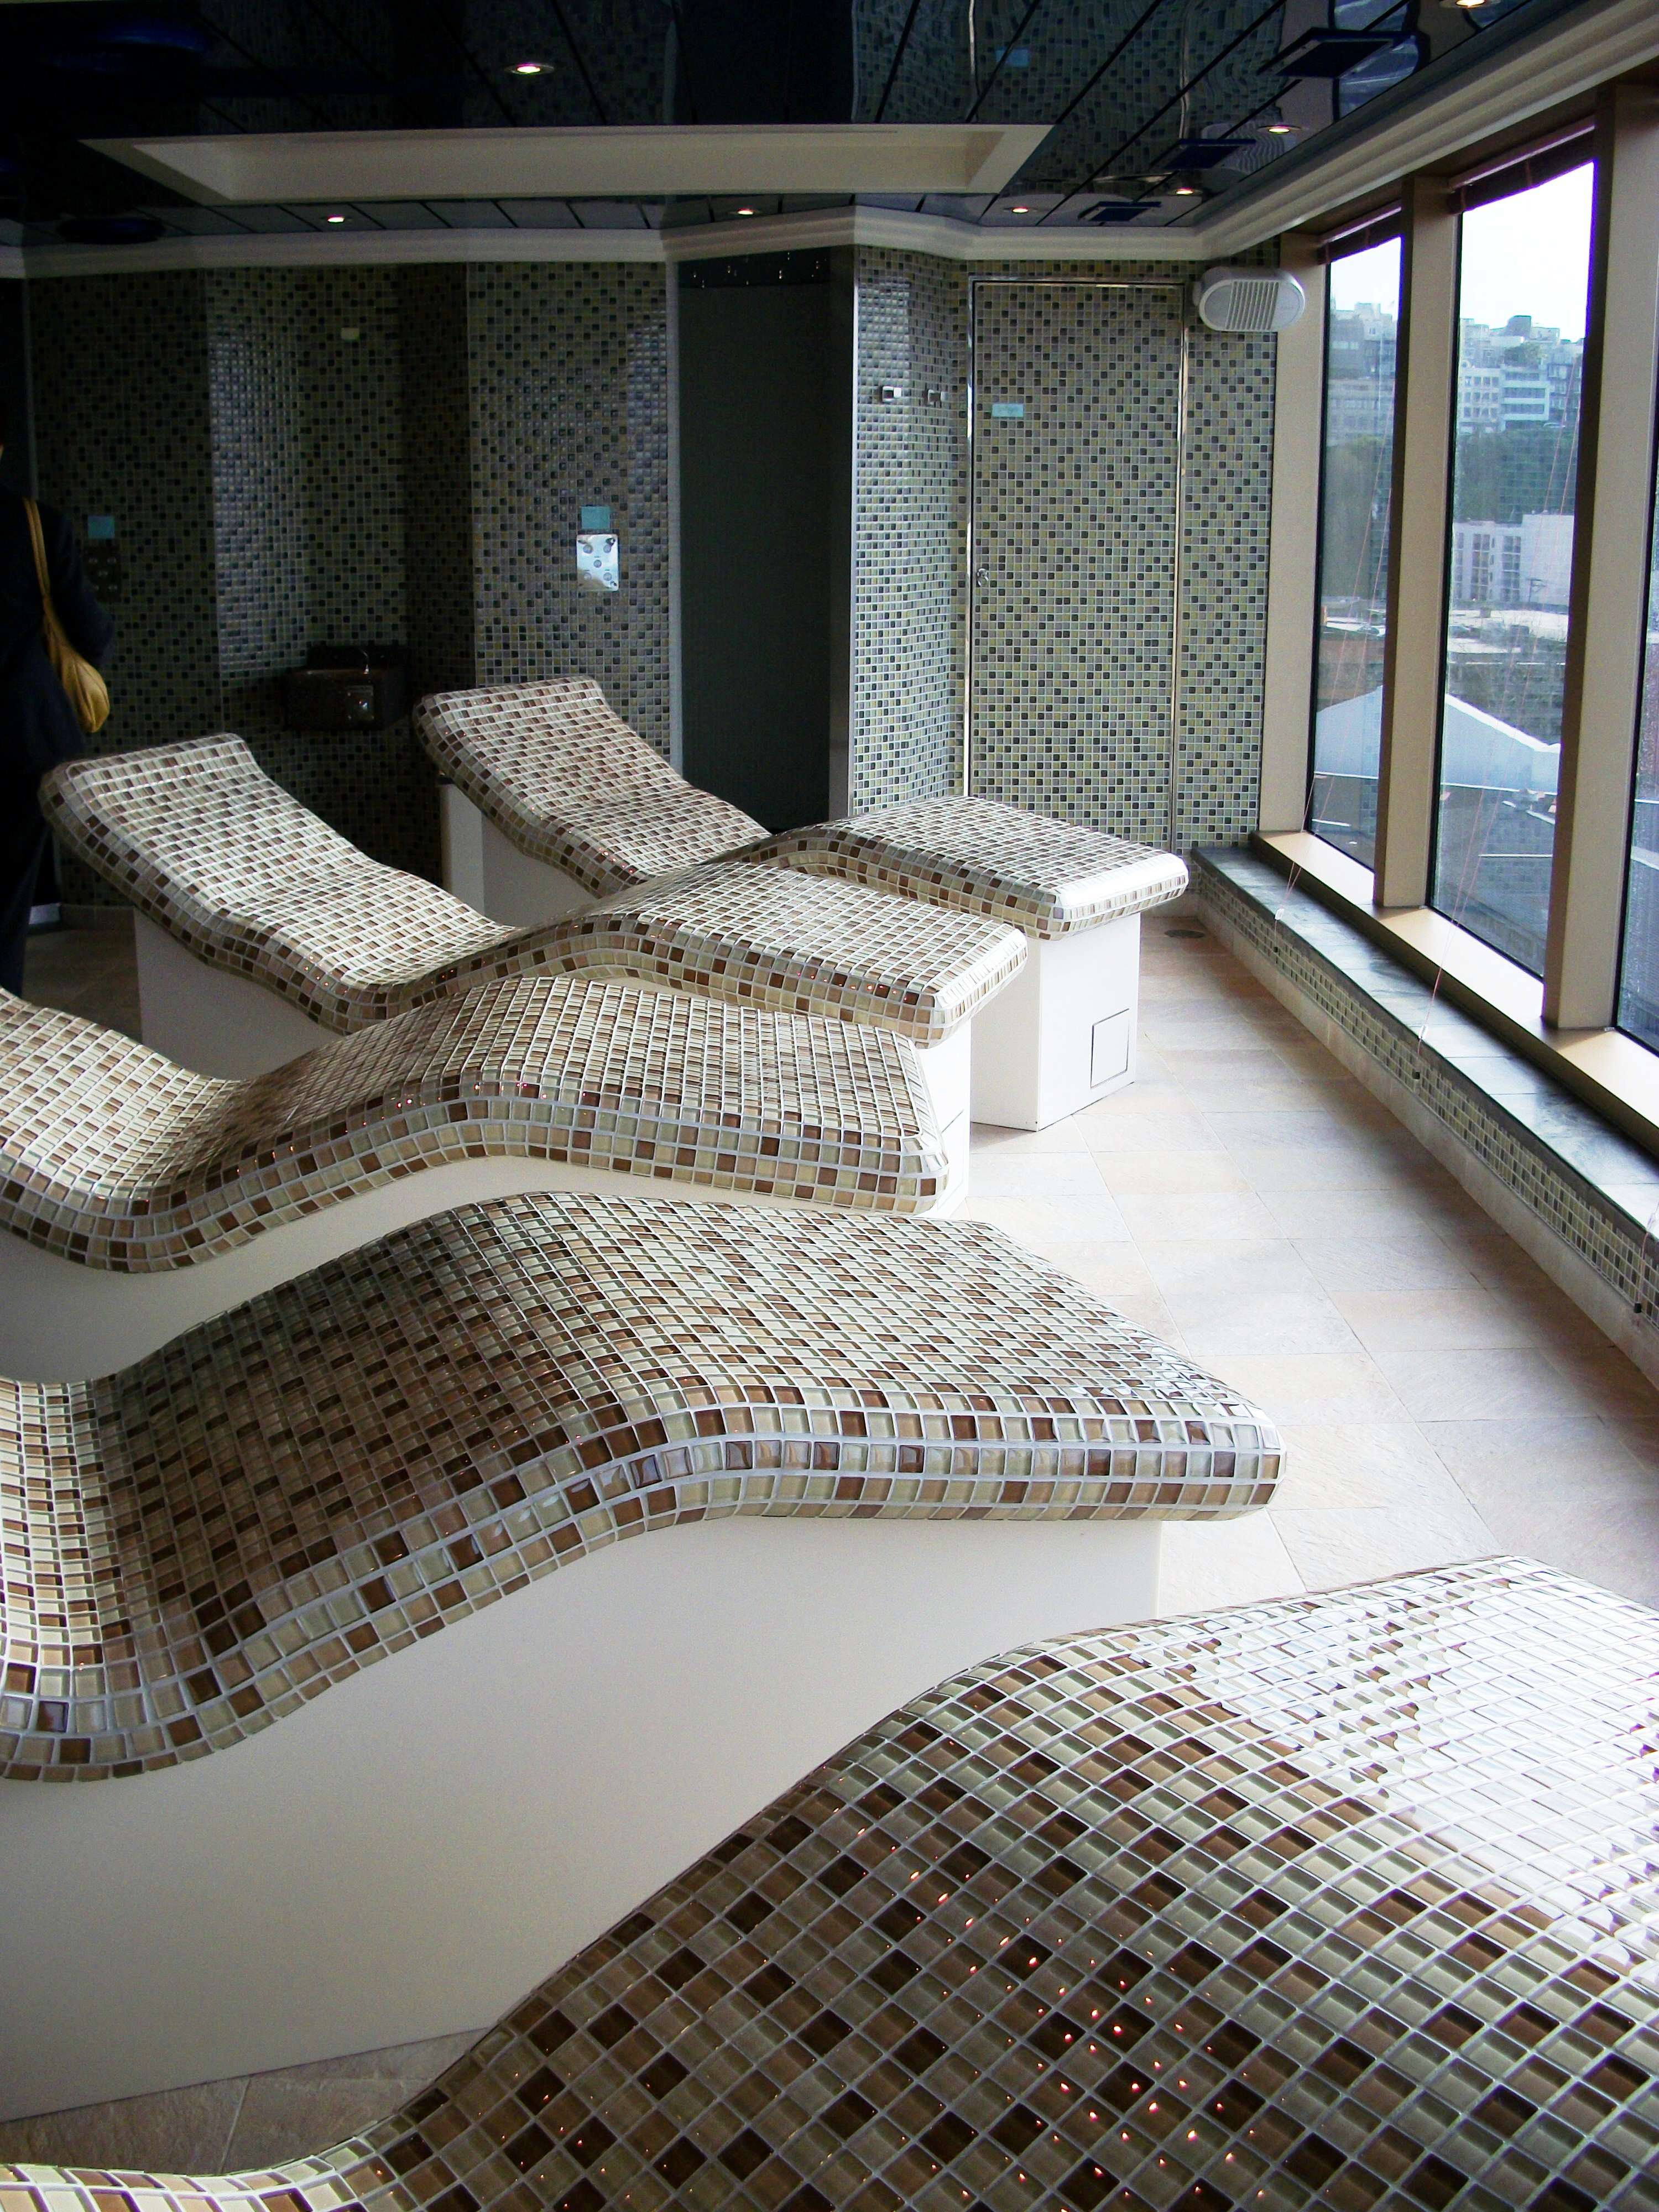 Spa - Ceramic tile heated seats